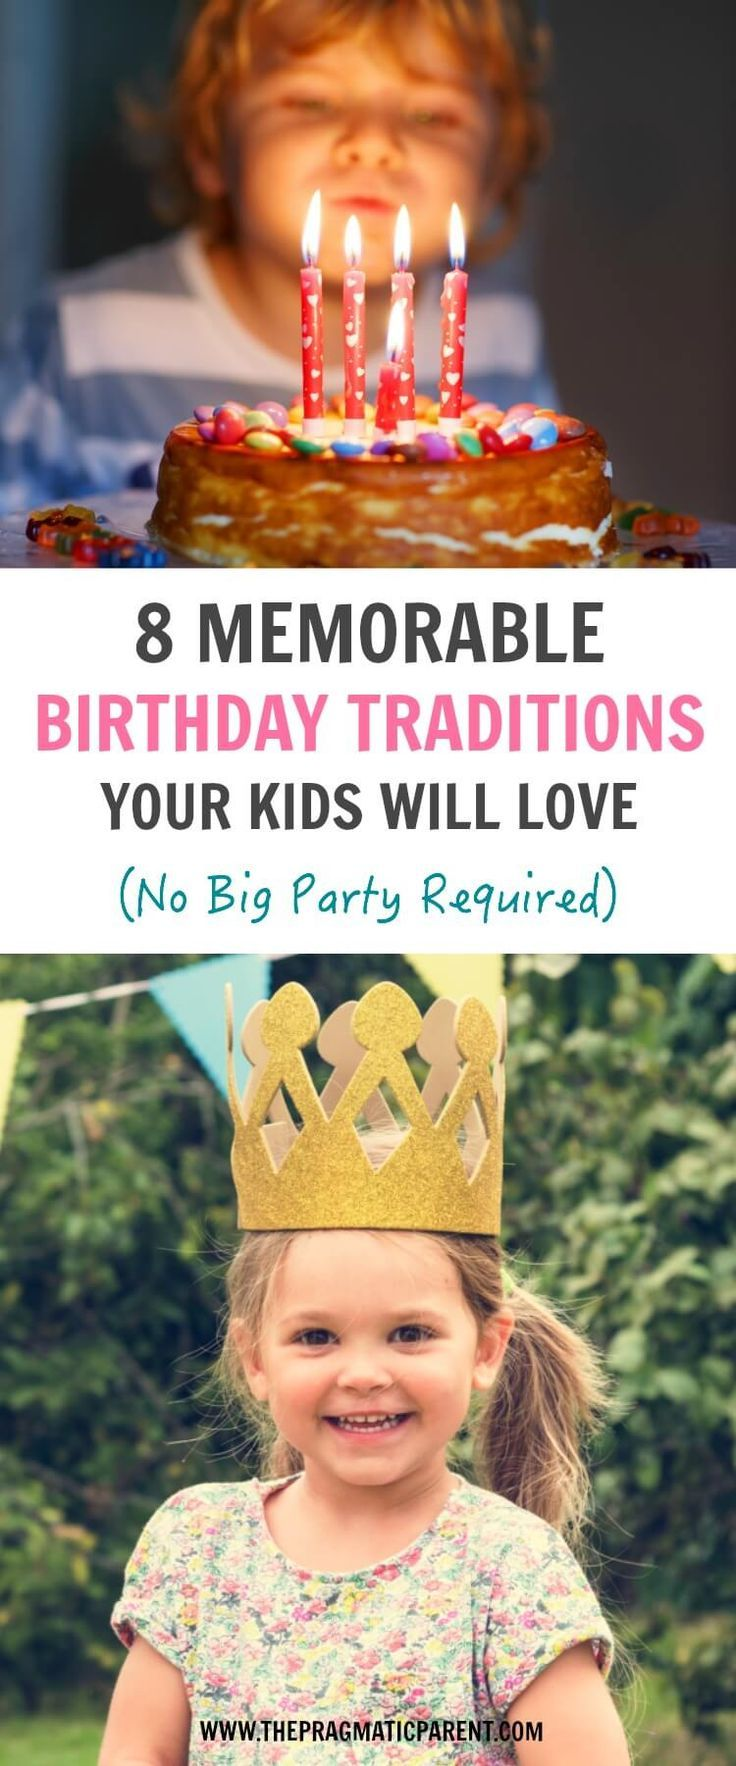 Kids don't need big b-day parties! Don't get stuck in the birthday party comparison trap and throw your child an over-the-top birthday party. 8 Birthday Traditions your kids will love and make them feel extra special on their birthday.